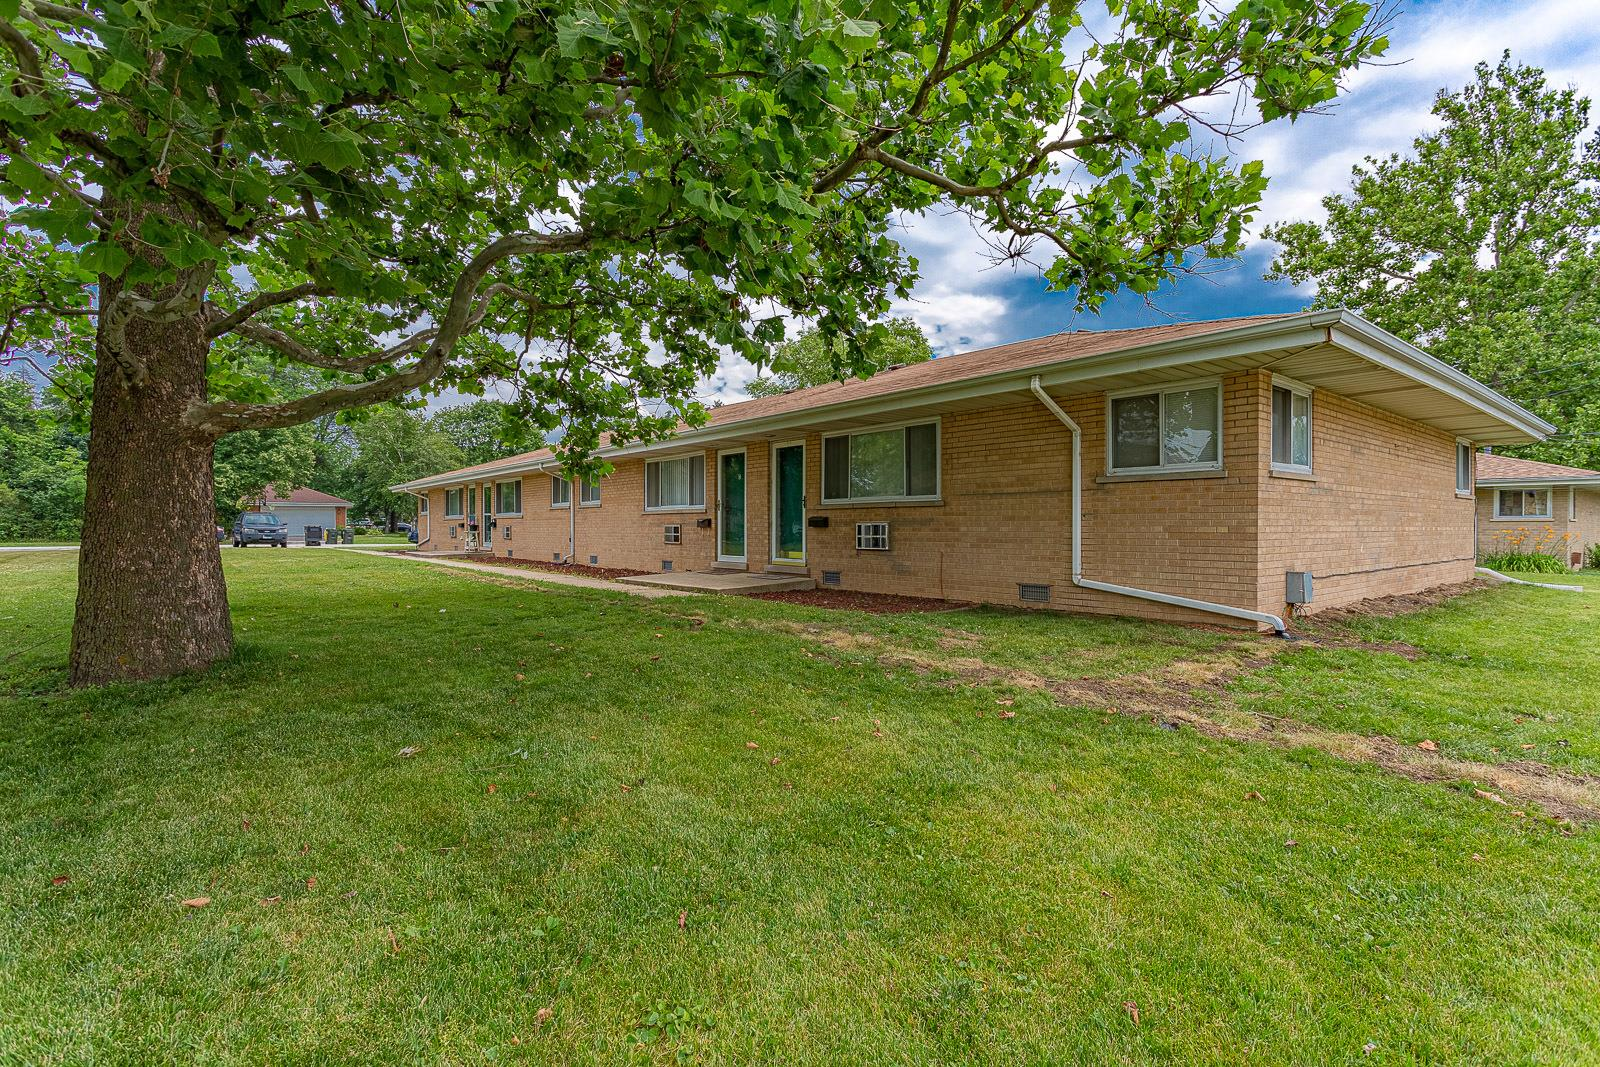 220 Walter Drive, Roselle, IL 60172 - #: 10781092